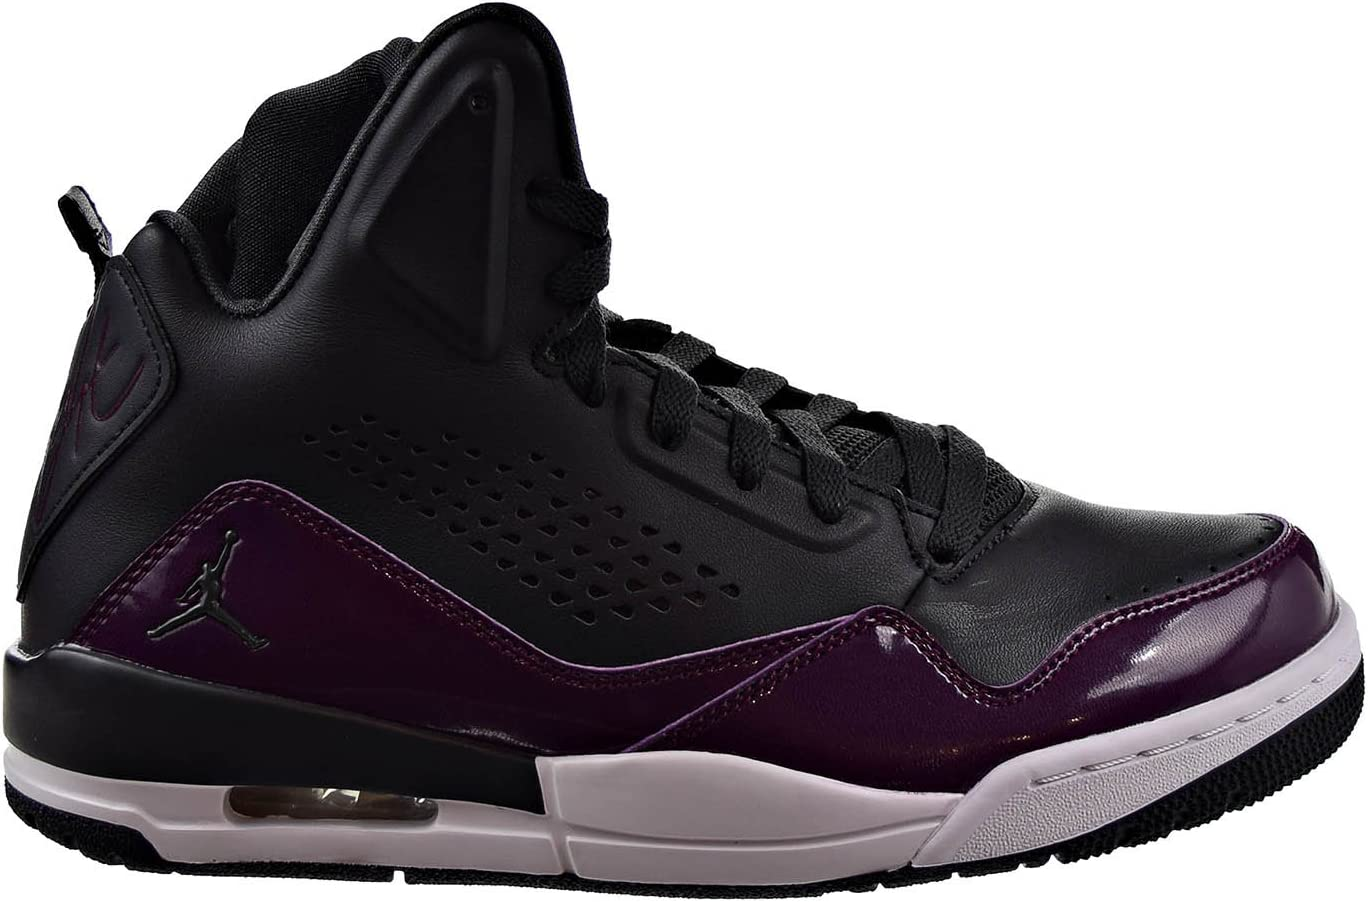 Jordan Nike Mens SC-3 Anthracite/Anthracite/Bordeaux Basketball Shoe 11.5 Men US 71LH619izWLSL1500_